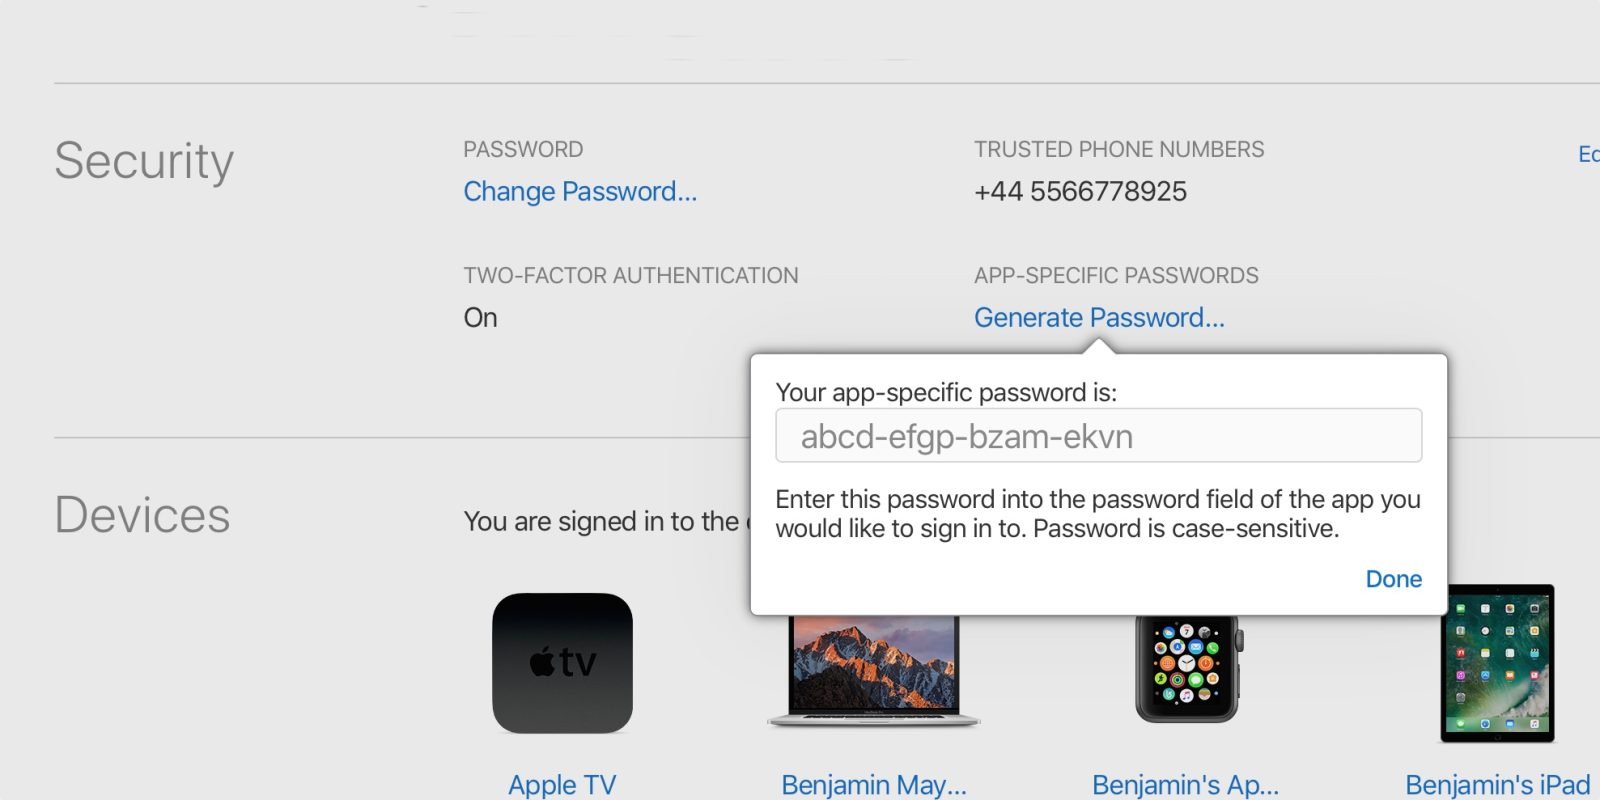 App specific passwords will be required to sign in to iCloud